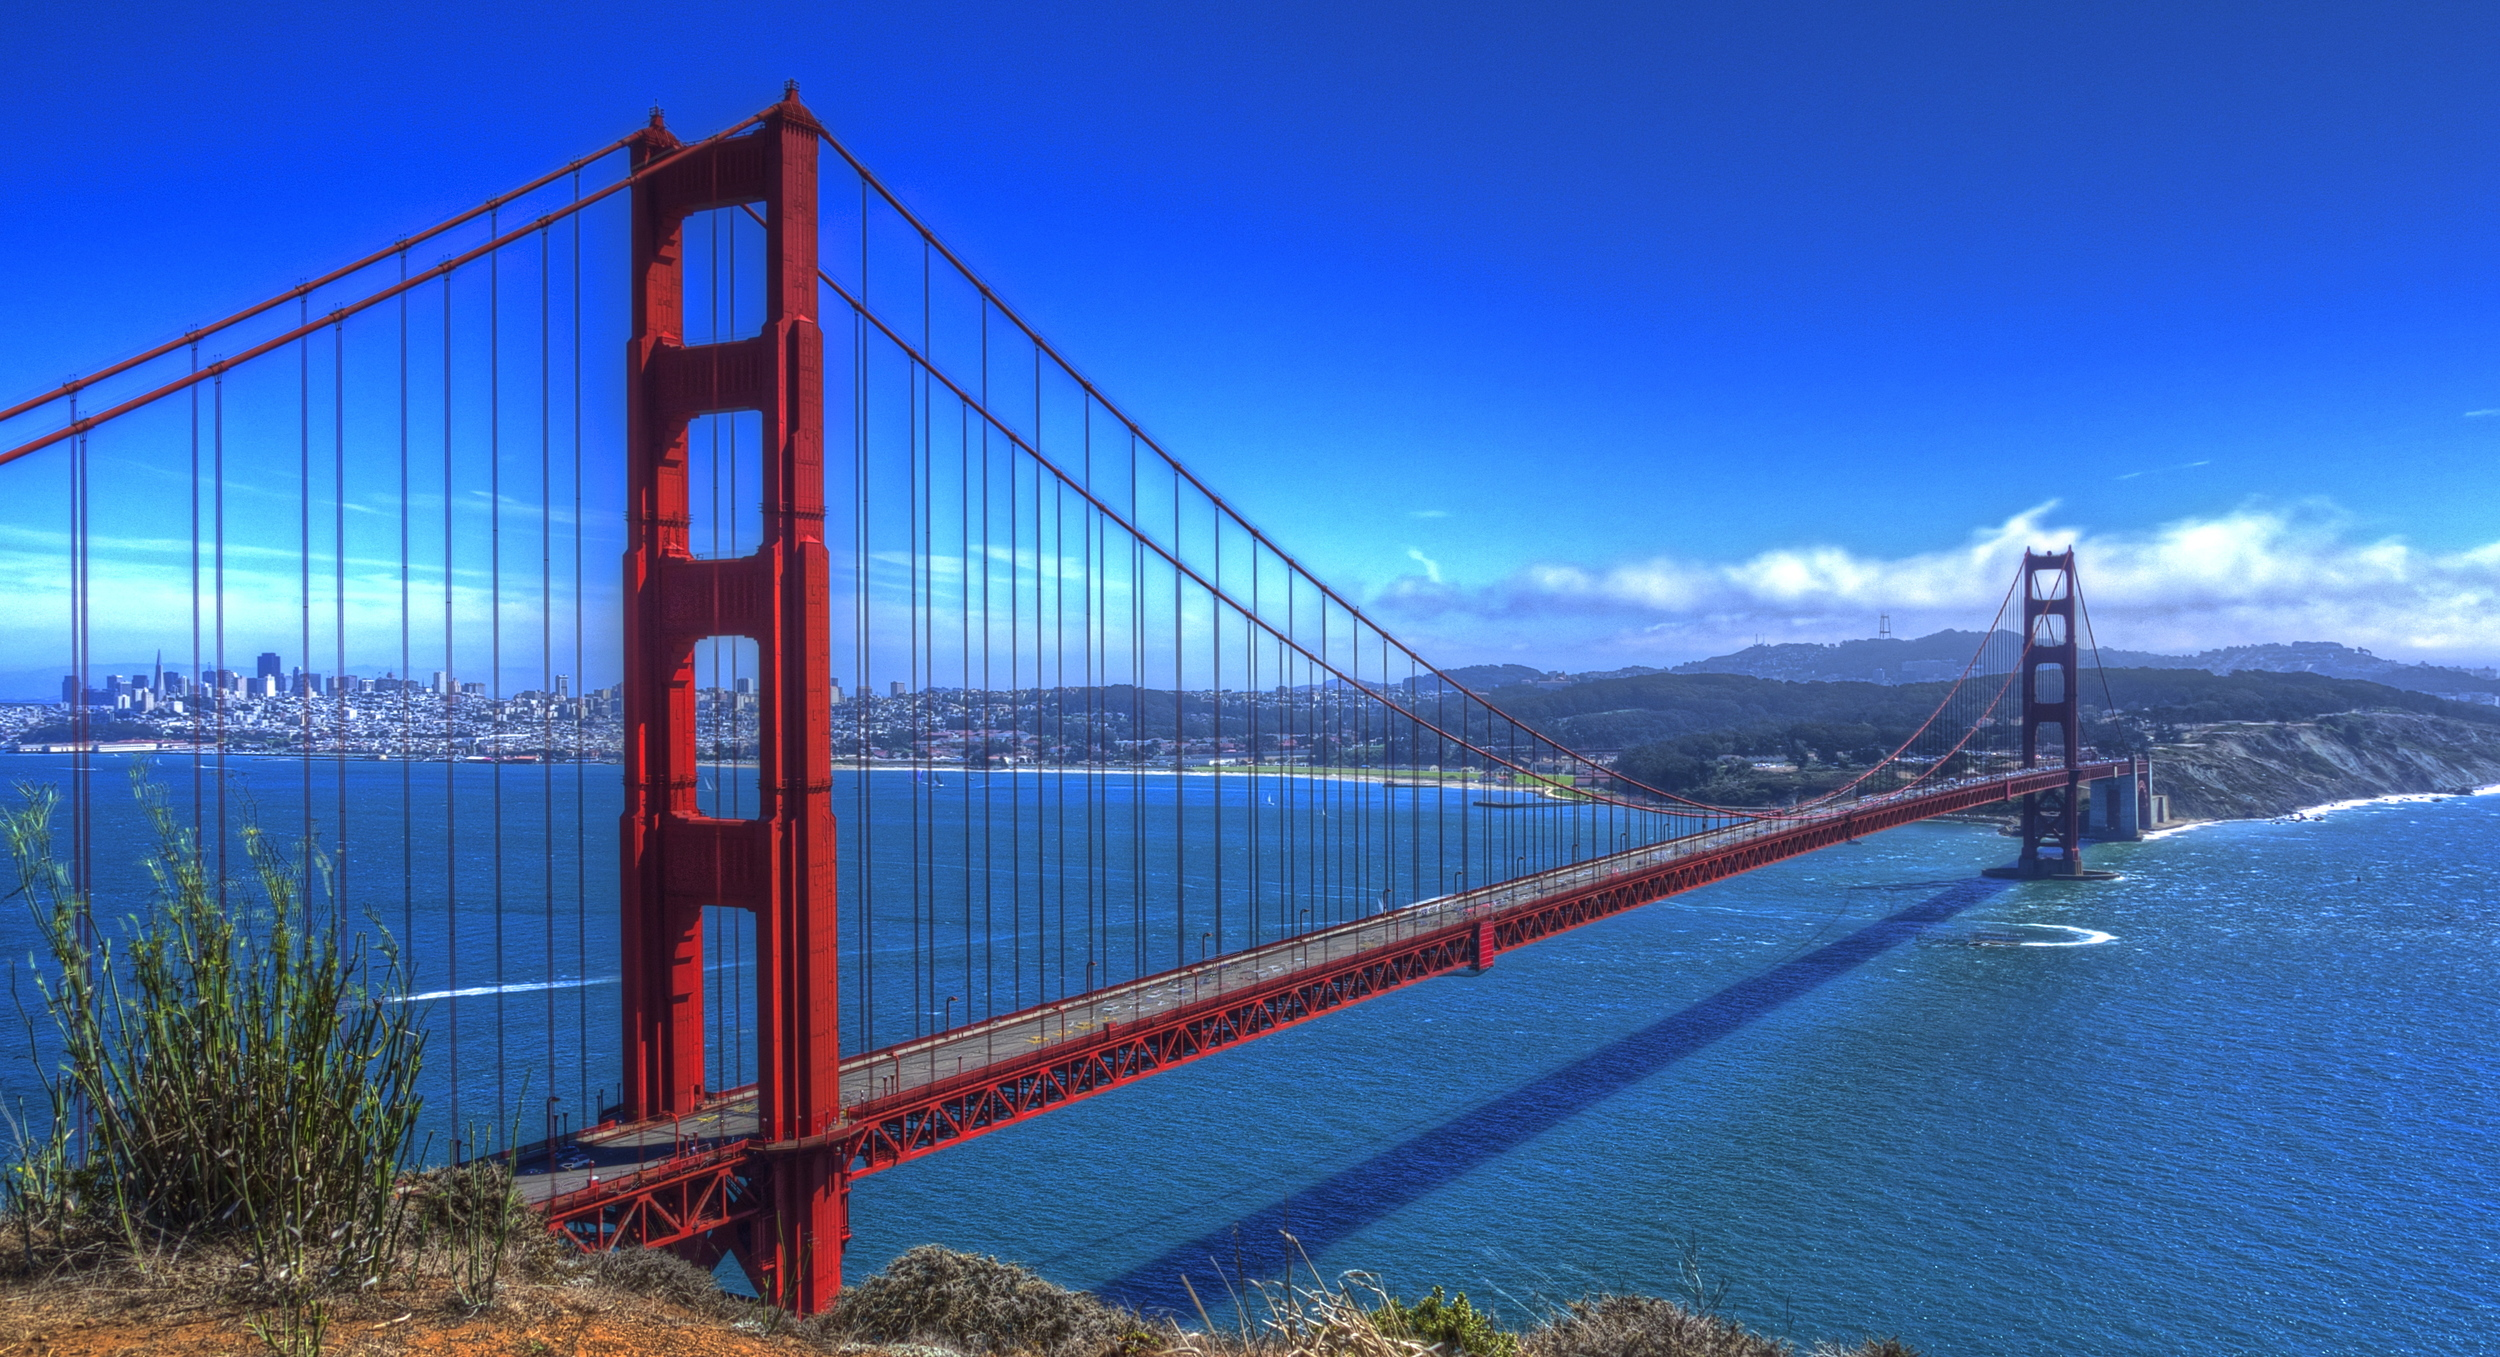 This Is My Photo Of The Golden Gate Bridge, There Are Many Like It But This One Is Mine